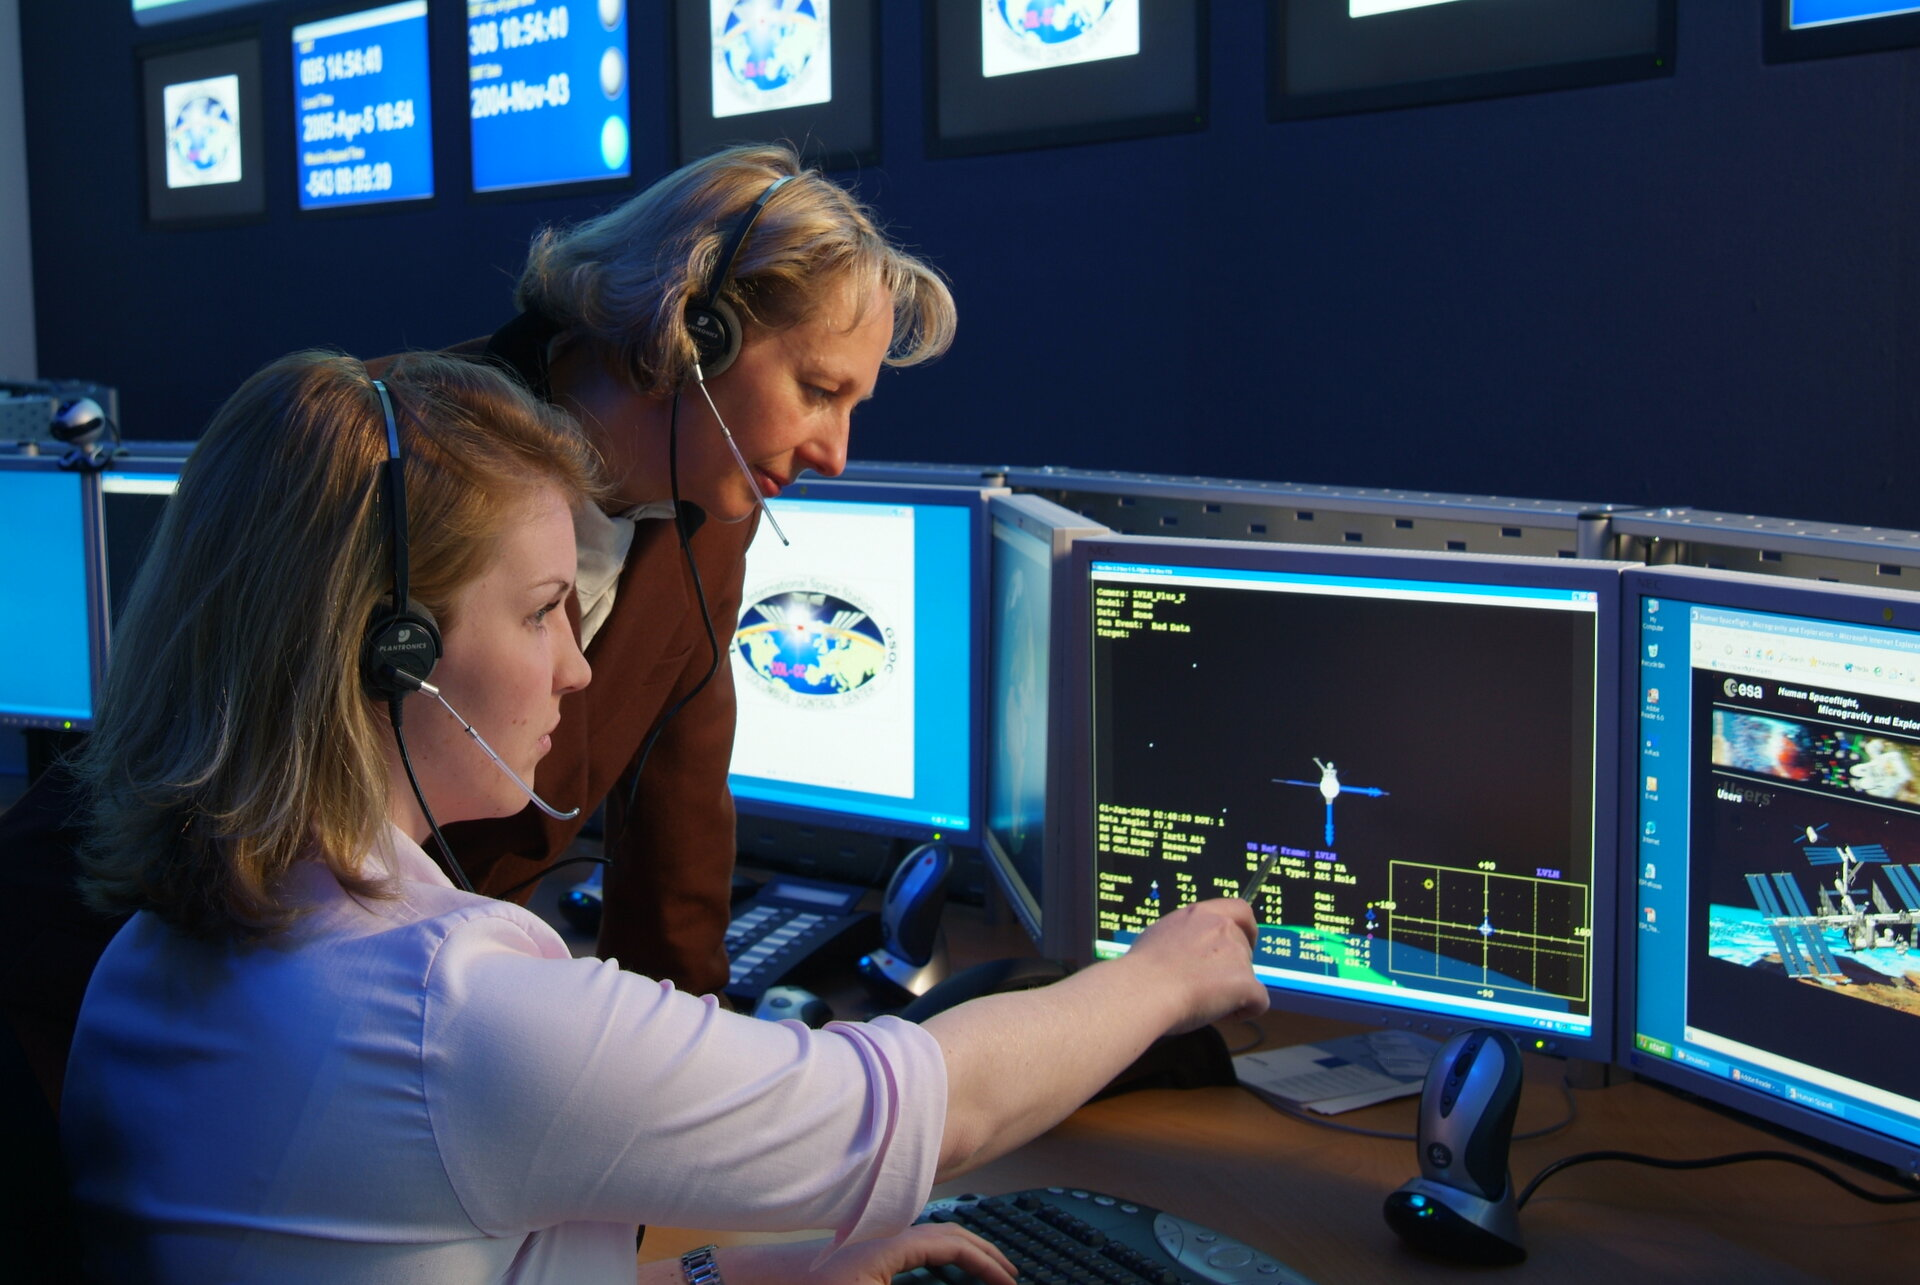 ESA Flight Directors work alongside DLR and industrial team mission controllers